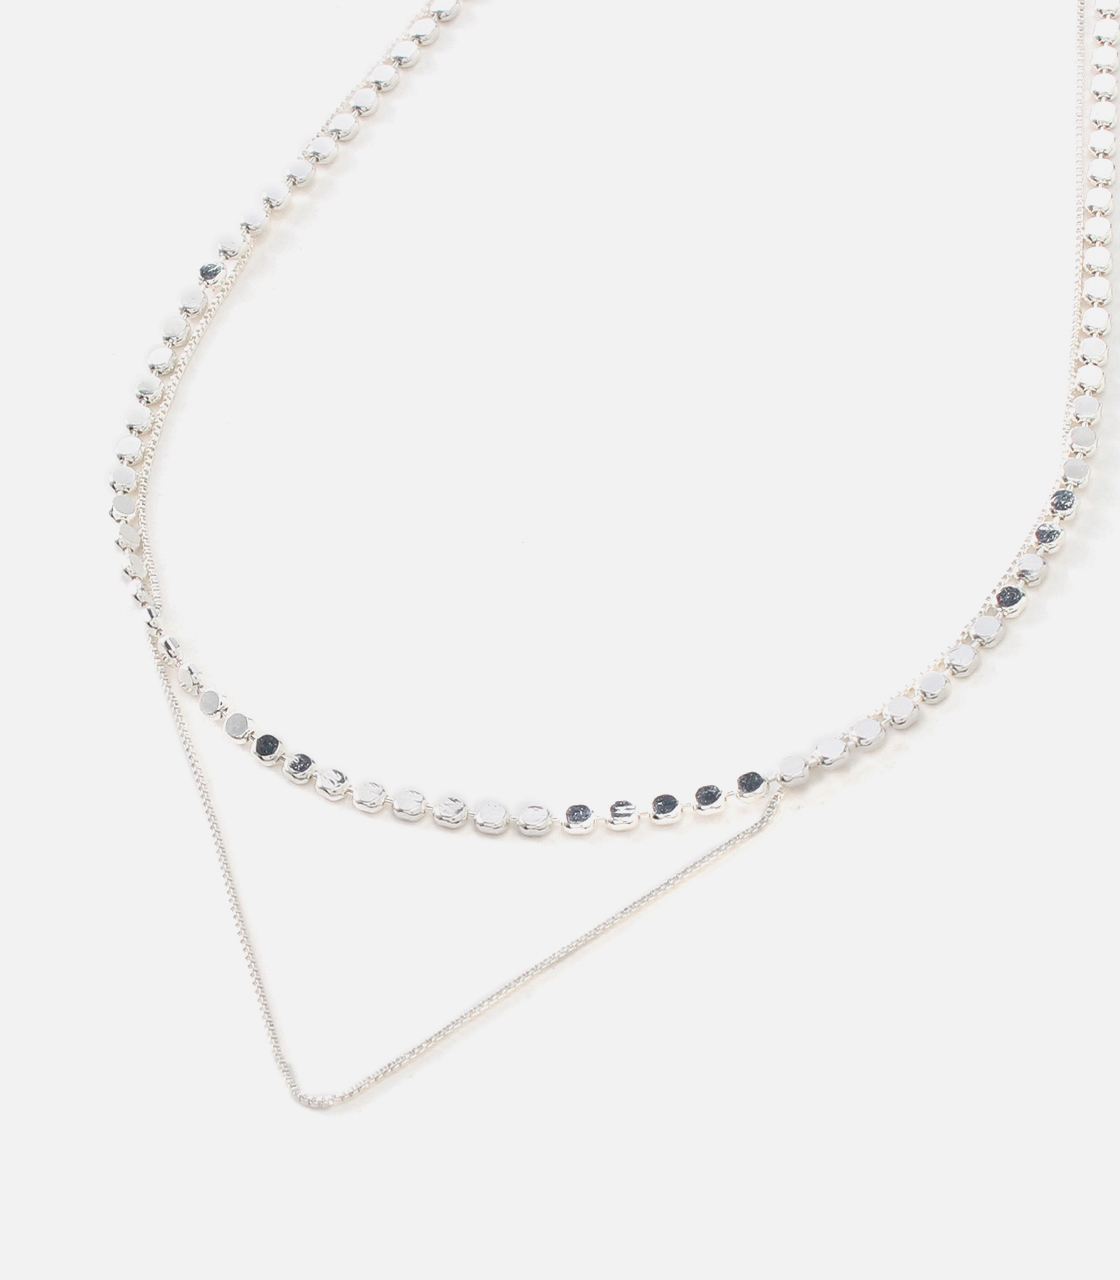 CIRCLE CHAIN NECKLACE/サークルチェーンネックレス 詳細画像 SLV 2